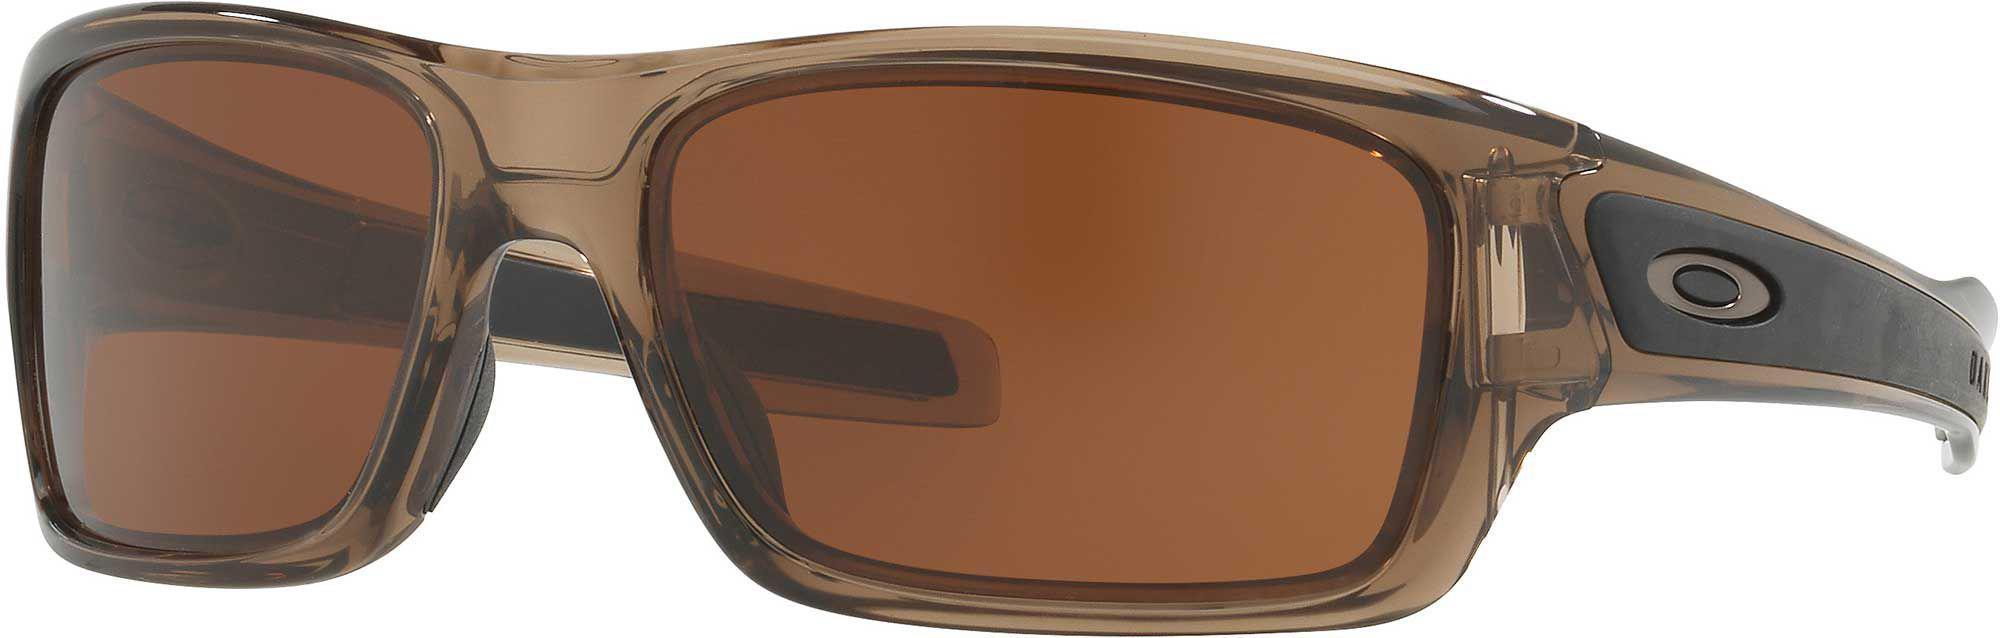 d55ed5effa Lyst - Oakley Youth Turbine Xs Sunglasses in Brown for Men